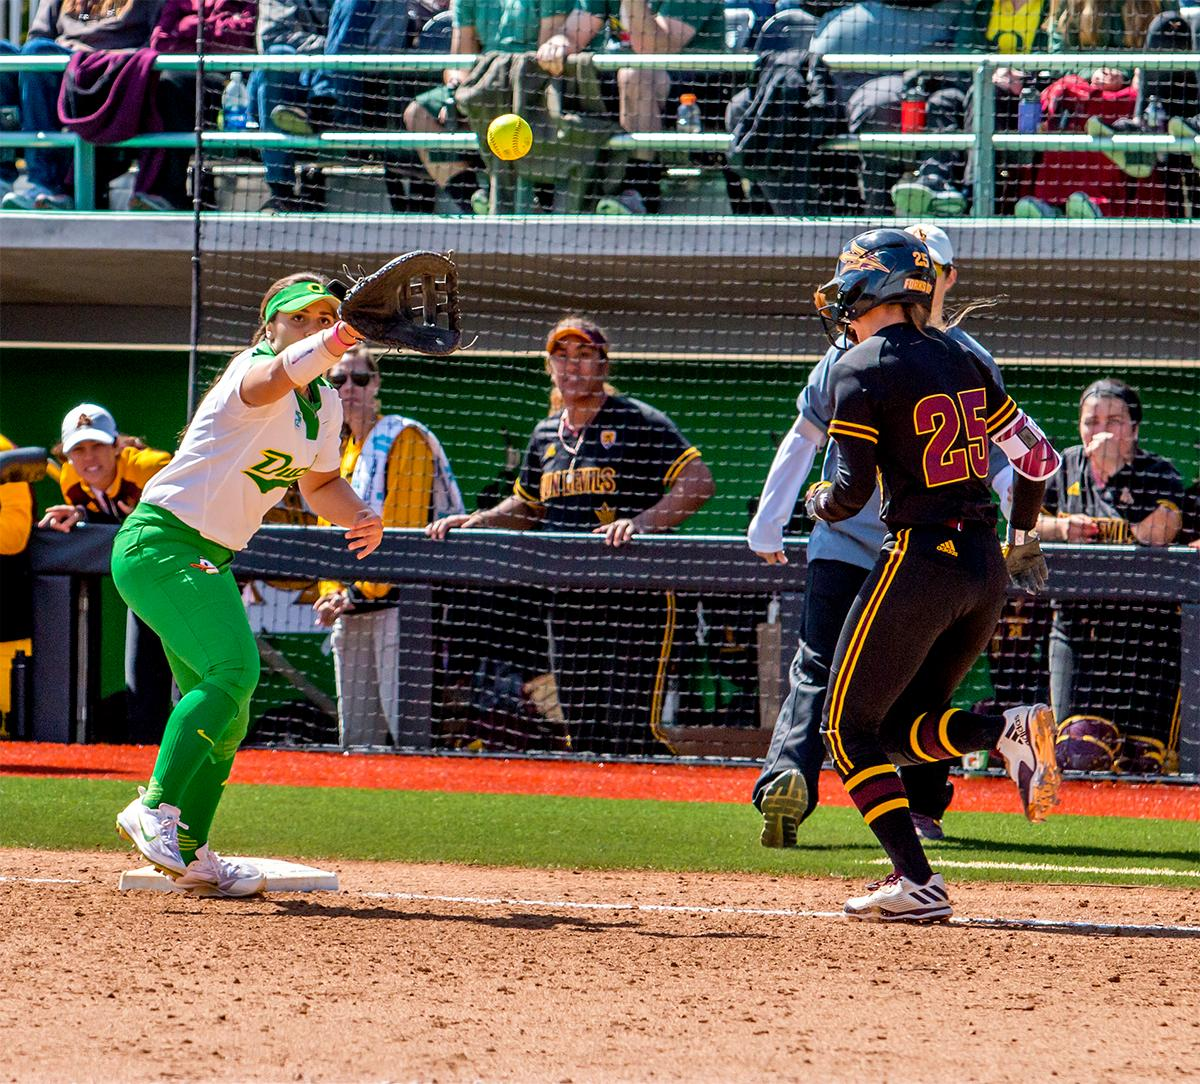 The Duck's Mia Camuso (#7) makes the catch to strike out the Sun Devils' Brianna Wise (#25). The Oregon Ducks Softball team took their third win over the Arizona Sun Devils, 1-0, in the final game of the weekends series that saw the game go into an eighth inning before the Duck?s Mia Camuso (#7) scored a hit allowing teammate Haley Cruse (#26) to run into home plate for a point. The Ducks are now 33-0 this season and will next play a double header against Portland State on Tuesday, April 4 at Jane Sanders Stadium. Photo by August Frank, Oregon News Lab